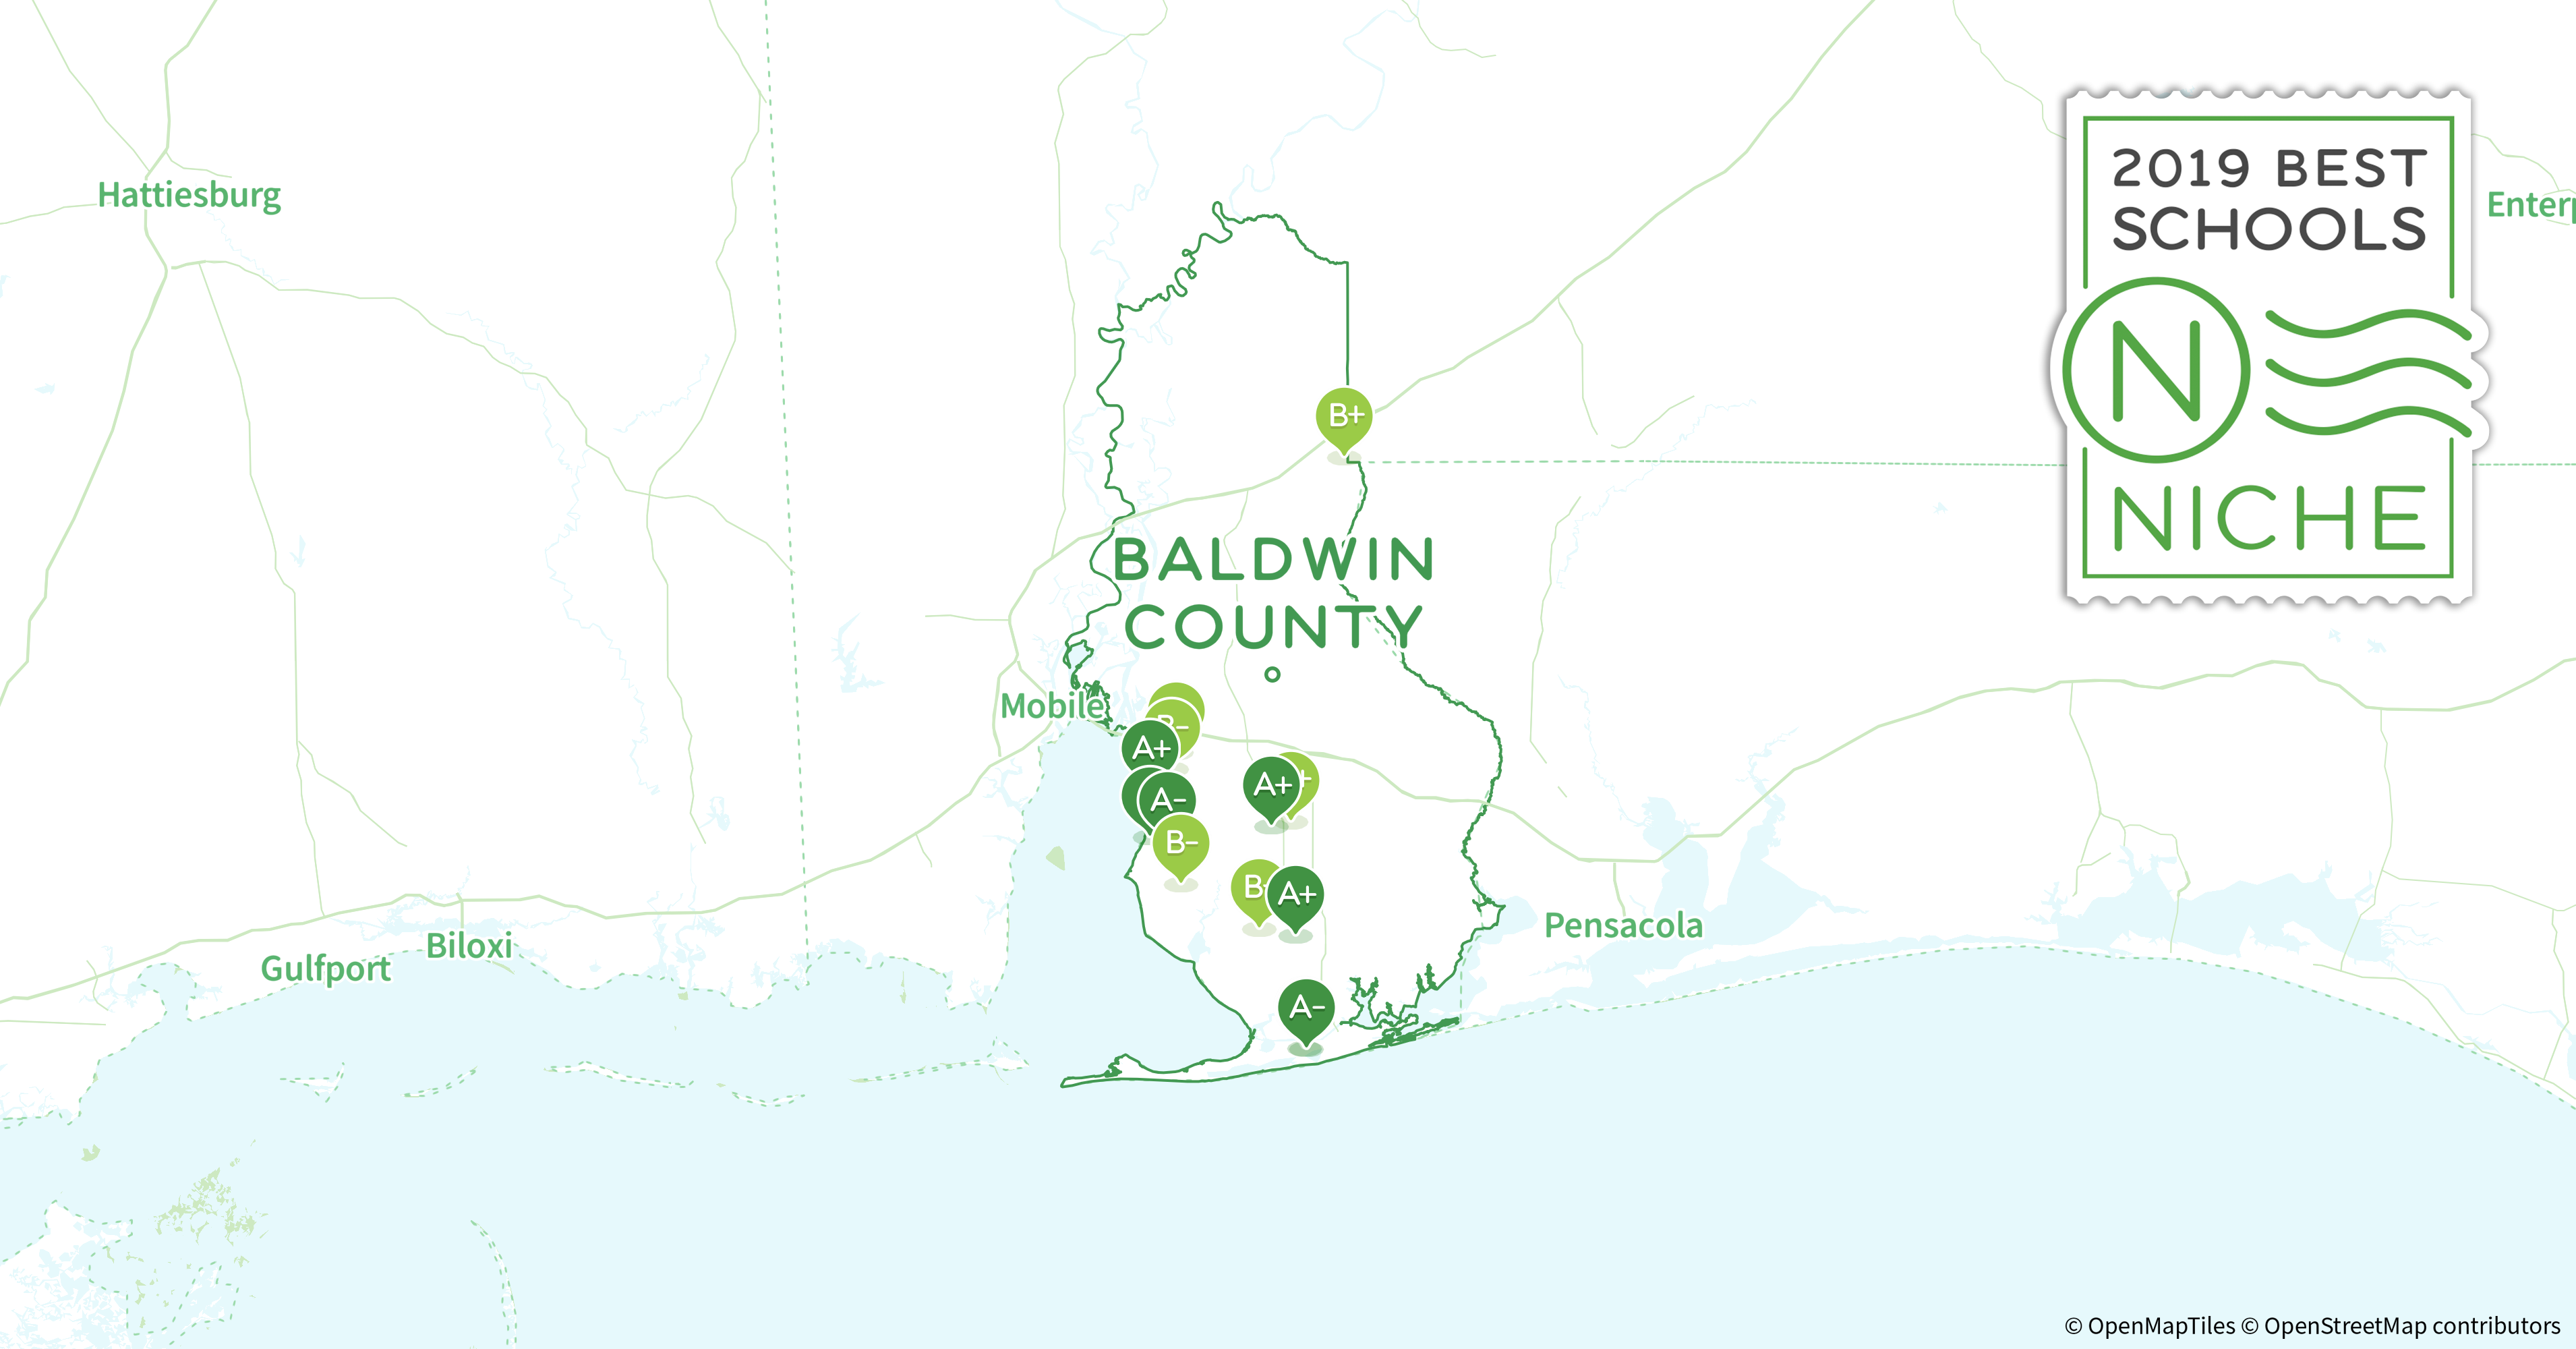 Compare College Prep at Baldwin County Public High s ... on dekalb county, baker county alabama map, madison county, nashville alabama map, houston county, pine grove alabama map, jefferson county, daphne alabama map, macon alabama map, autauga county alabama map, city of cullman alabama map, morgan county, spanish fort, gulf shores, escambia county, north alabama county map, orange beach, gulf shores alabama map, monroe county, black warrior river alabama map, montgomery county, barbour county alabama map, washington county, calhoun county, mobile county, st. augustine alabama map, baldwin beach express map, shelby county, silverhill alabama map, cook county alabama map, stockton alabama map, walton county alabama map, gulf state park alabama map, south carolina alabama map, perdido alabama map, butler county,